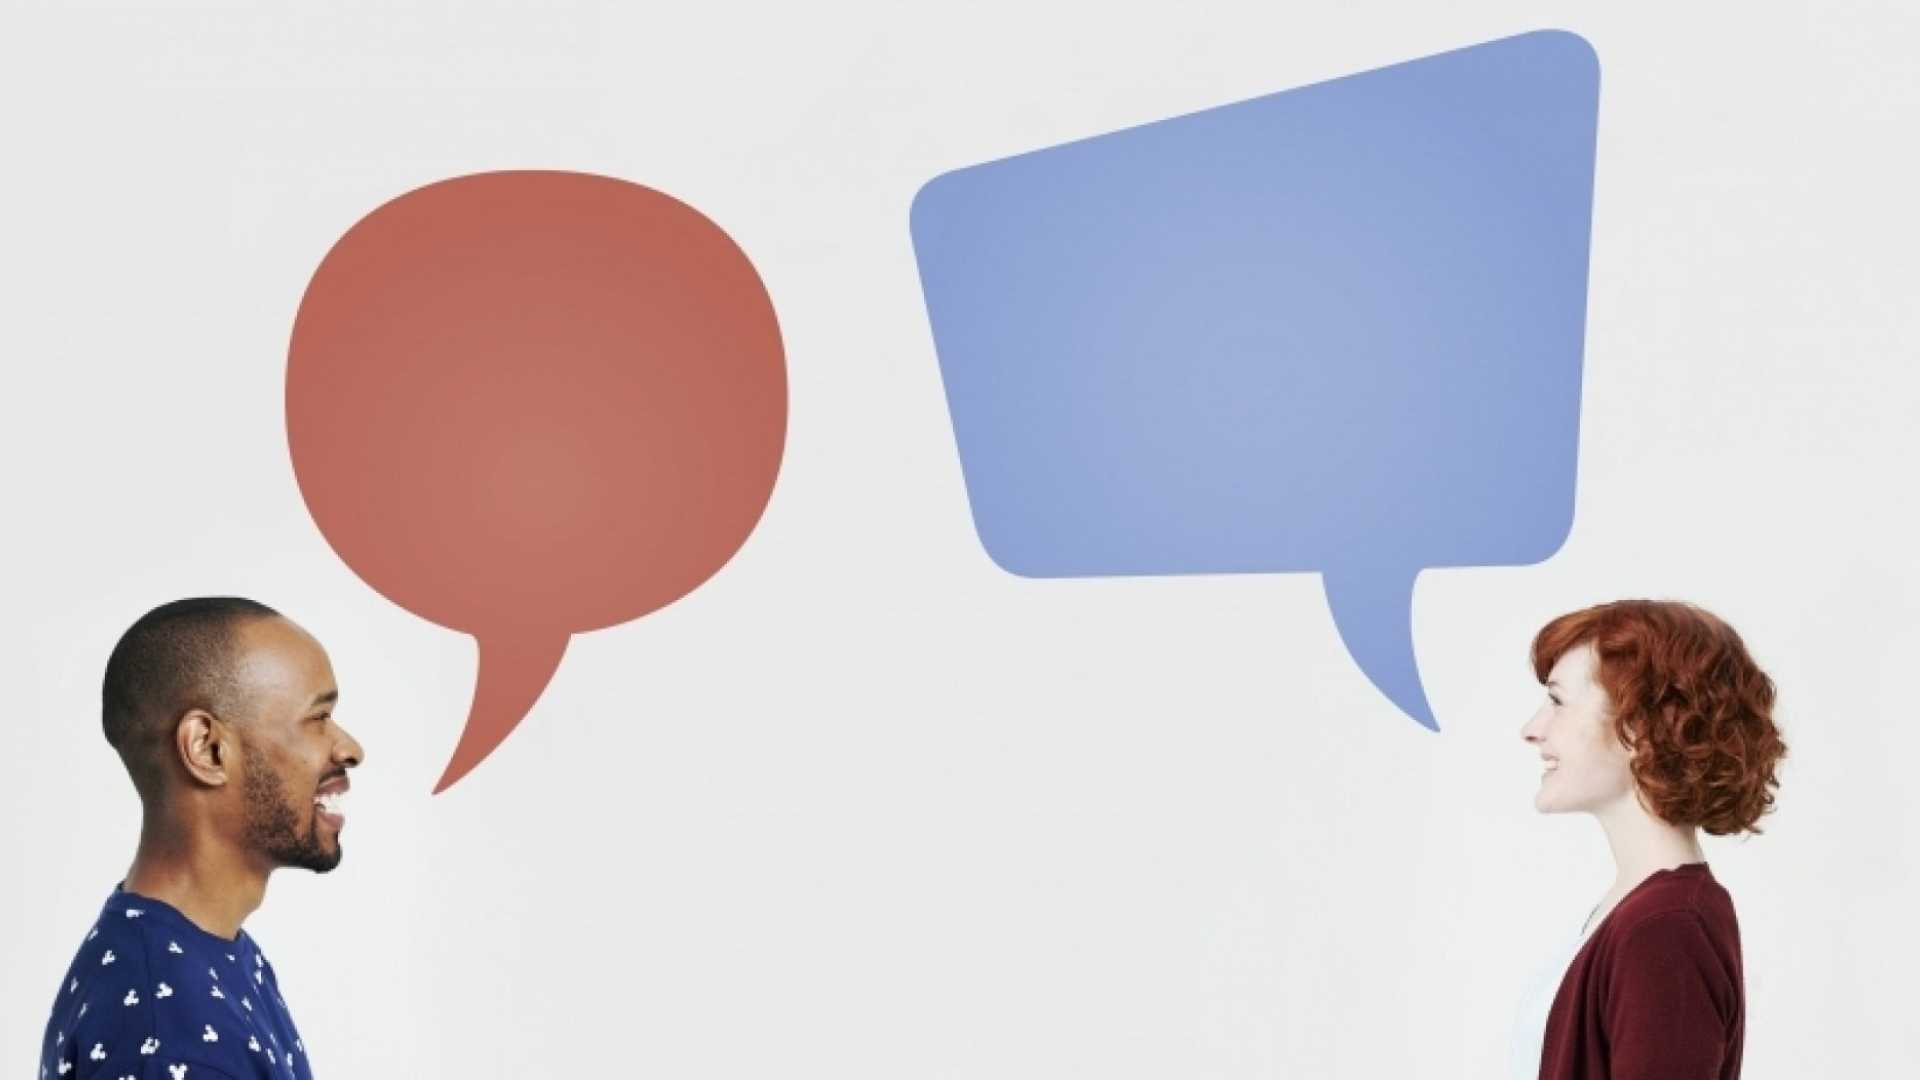 6 Friendly Phrases You Can Use to Delight Customers